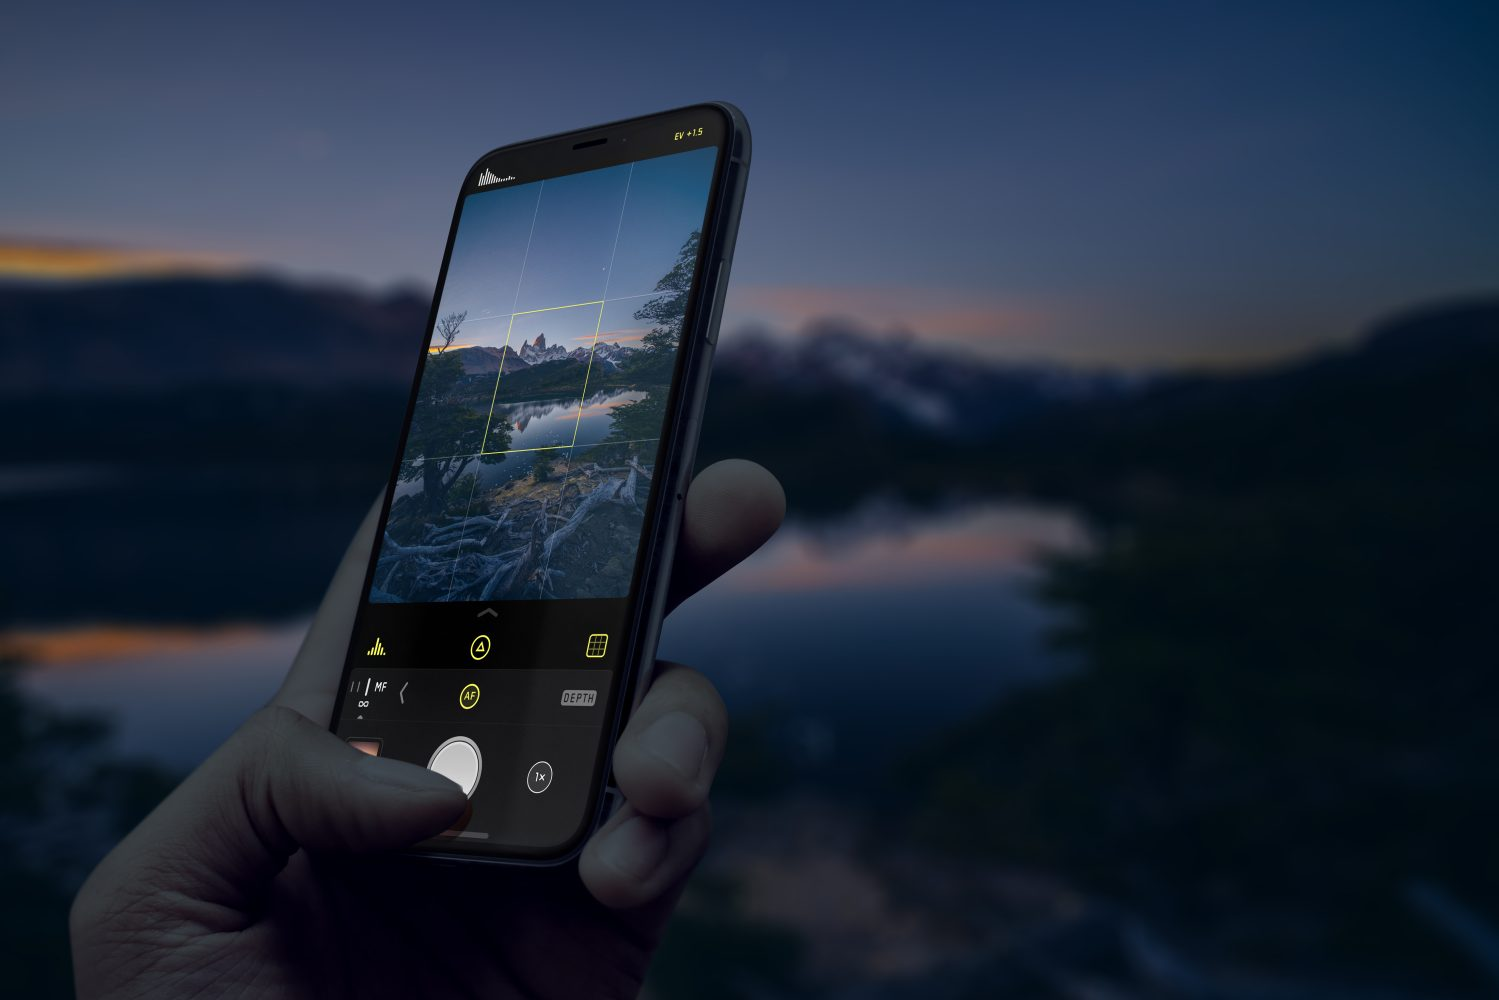 Update to popular RAW camera app Halide includes 4x faster capture